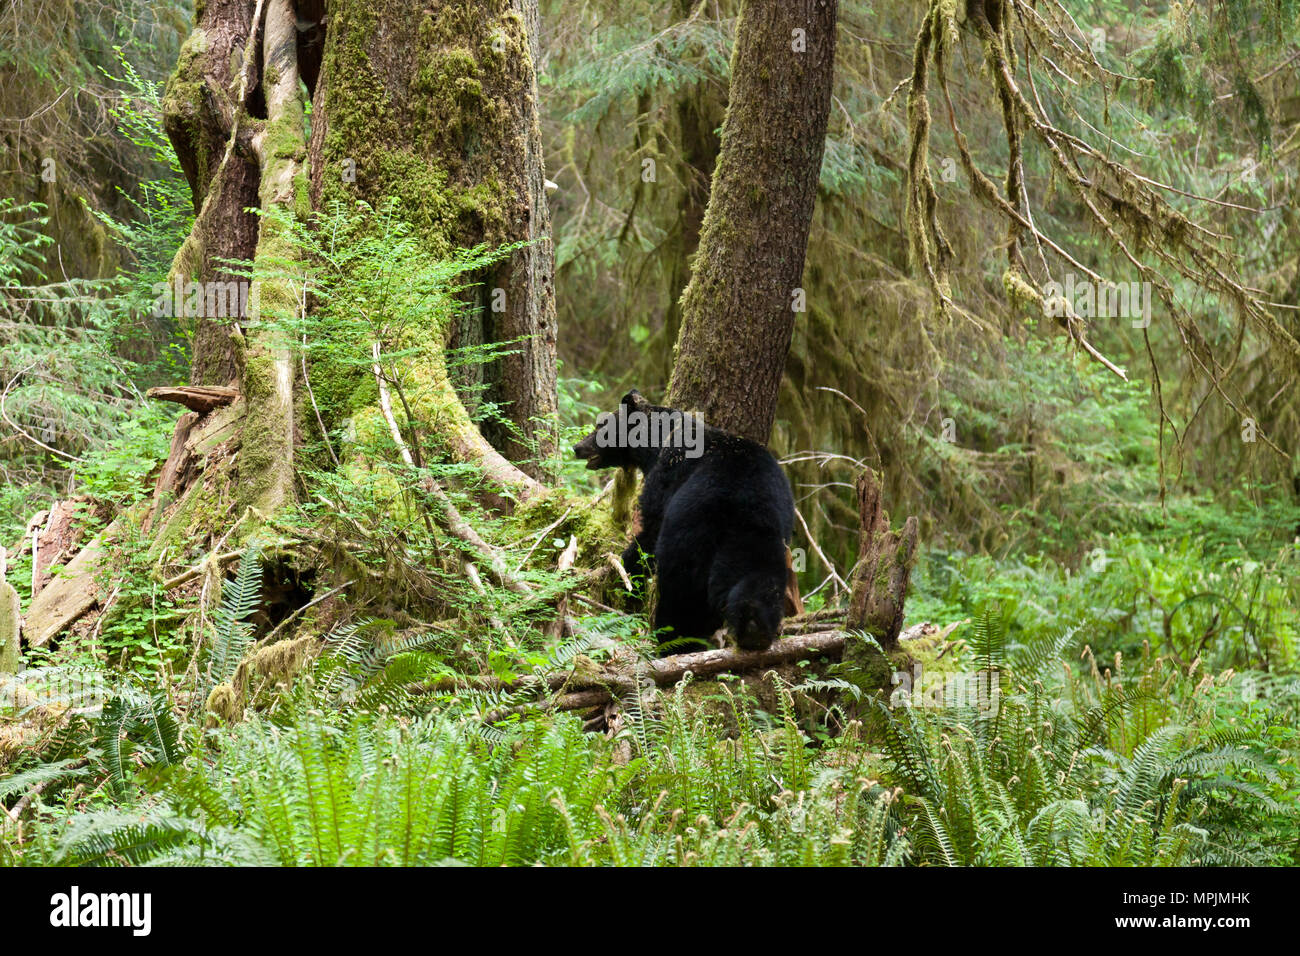 Bear in the The Hoh Rainforest in Olympic National Park, Washington. - Stock Image